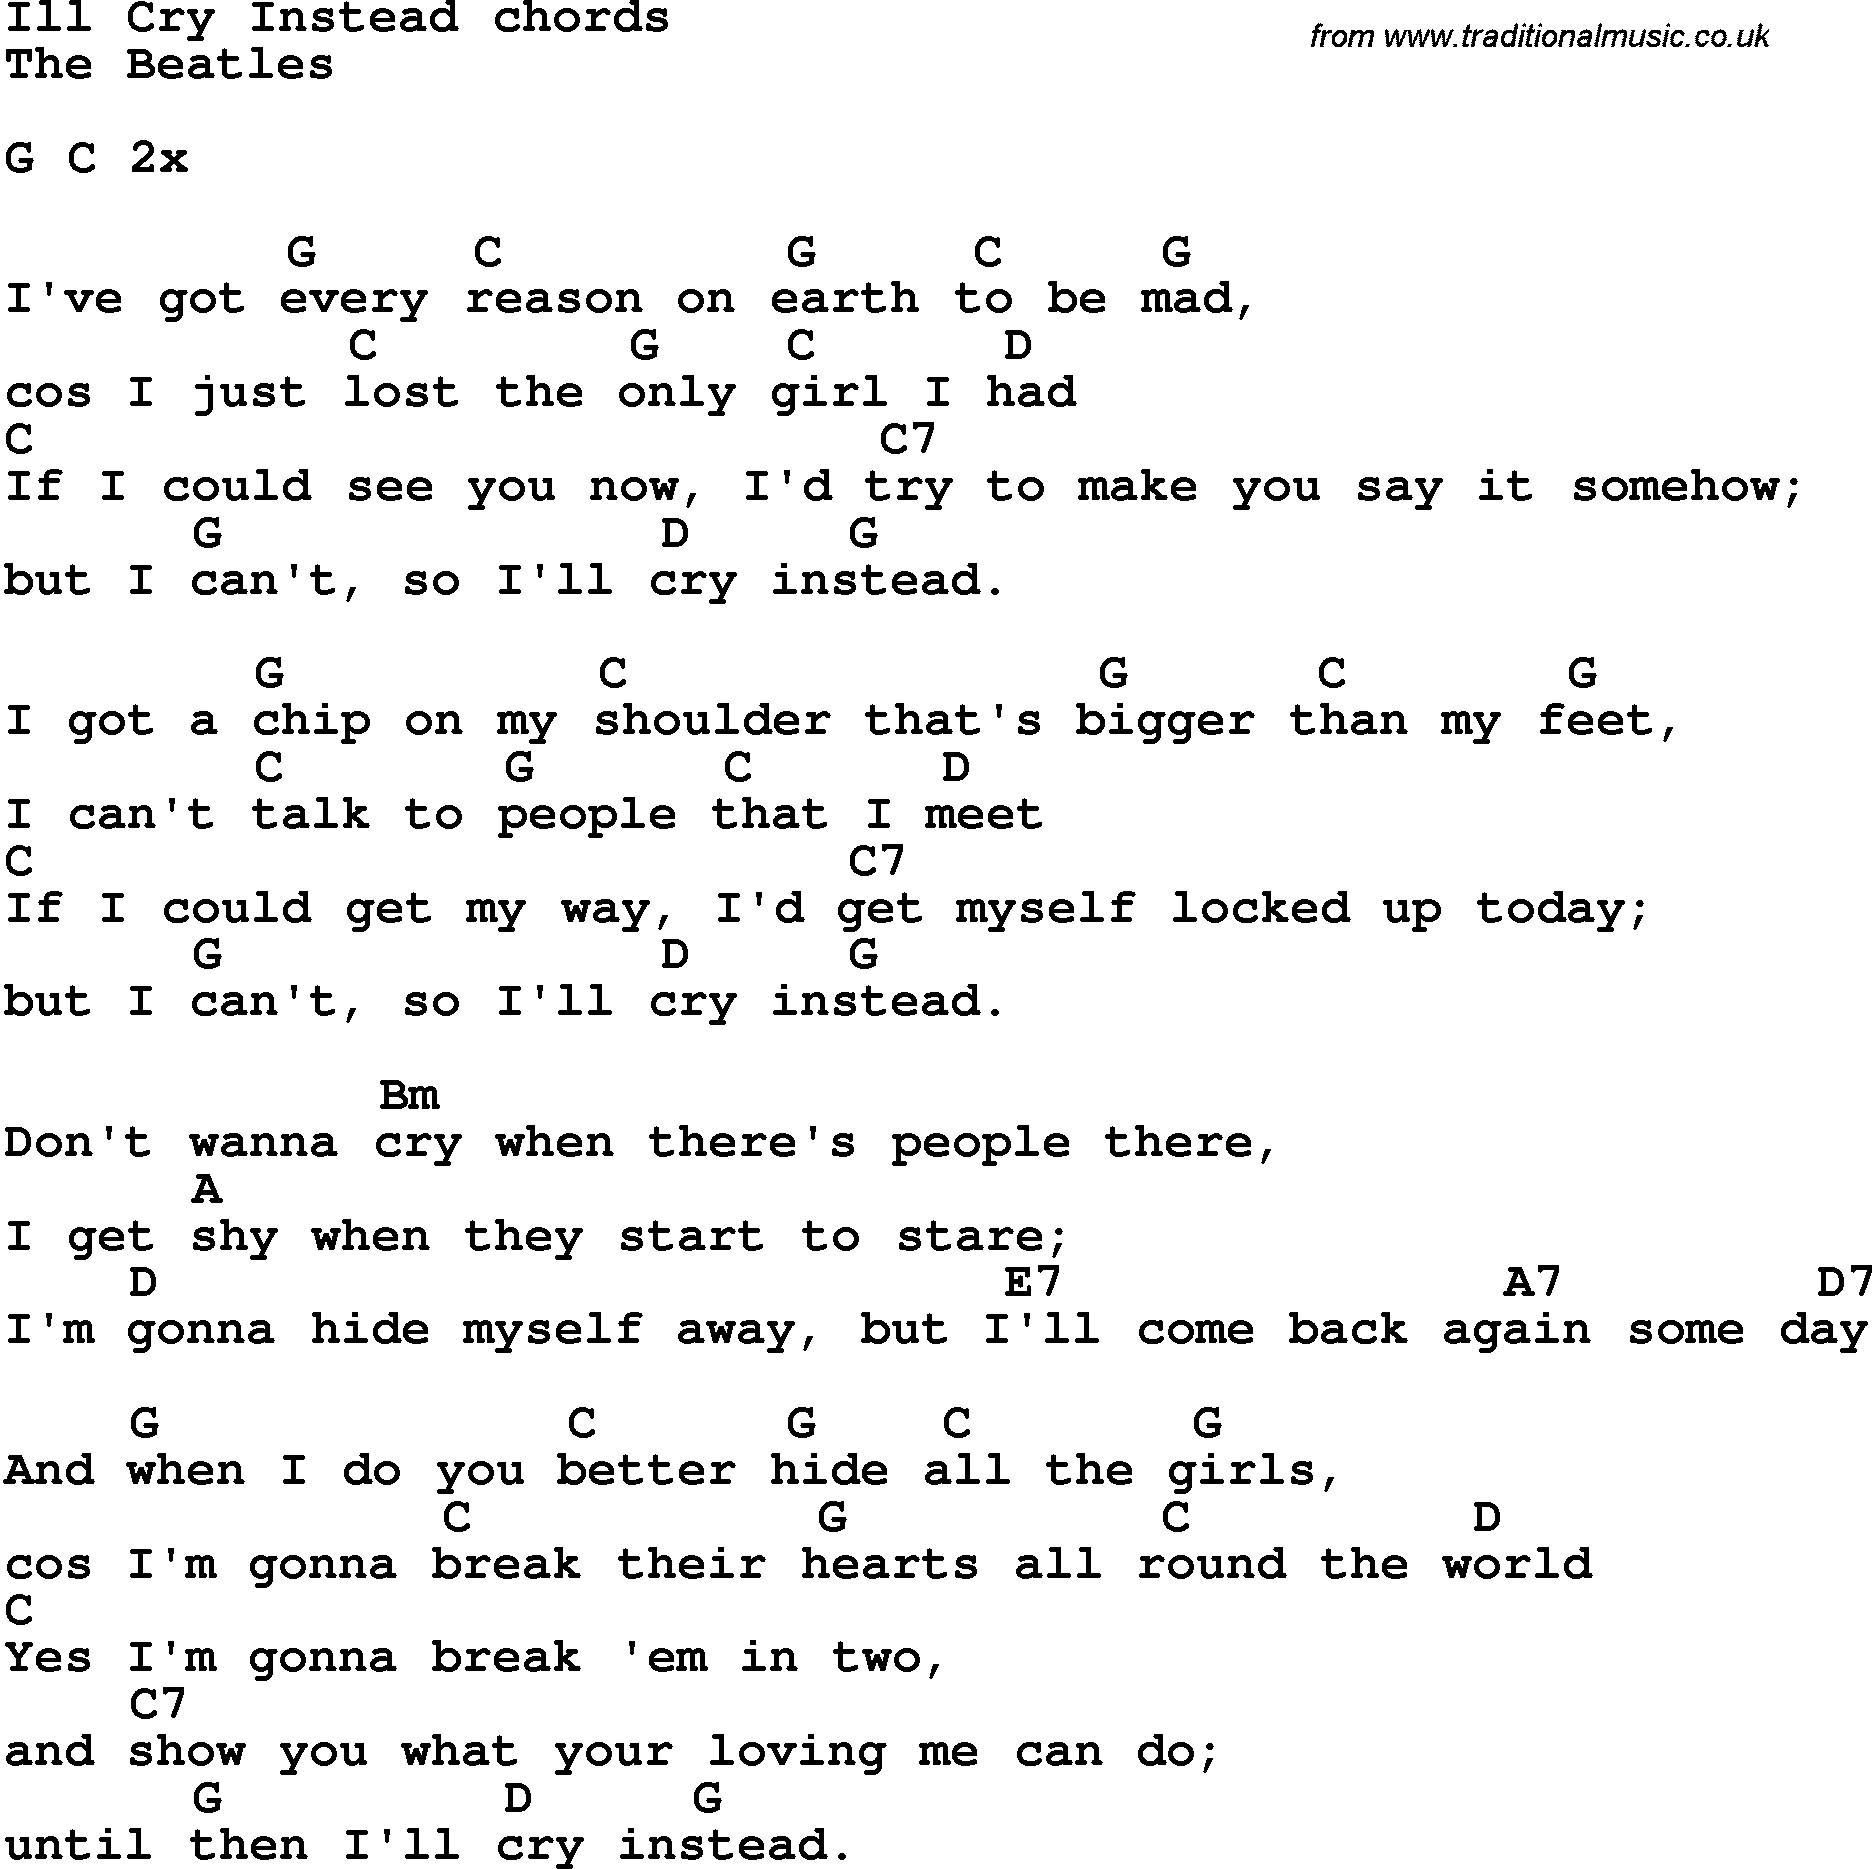 Song lyrics with guitar chords for ill cry instead the beatles song lyrics with guitar chords for ill cry instead the beatles hexwebz Images